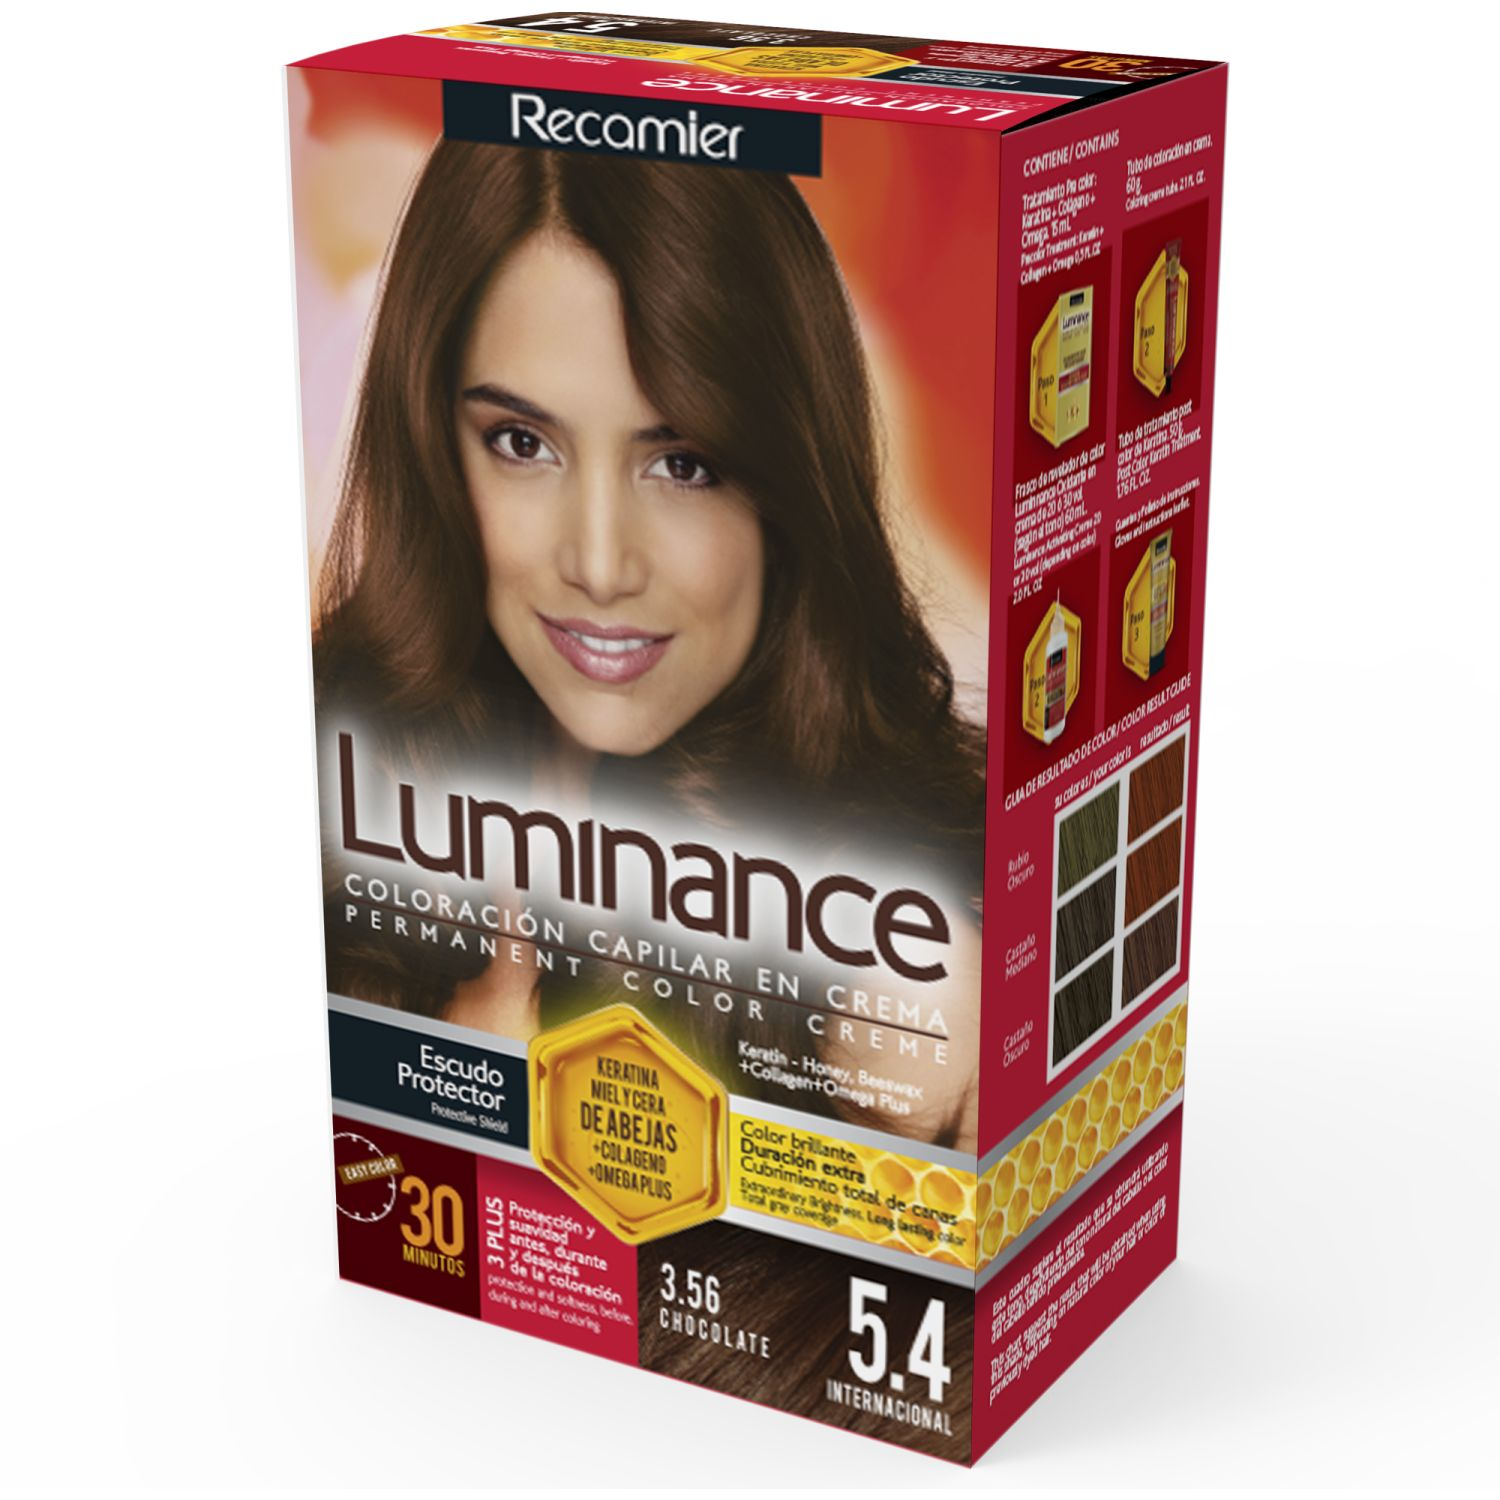 LUMINANCE Tinte Luminance Kit 5.4 60g Chocolate Tintes